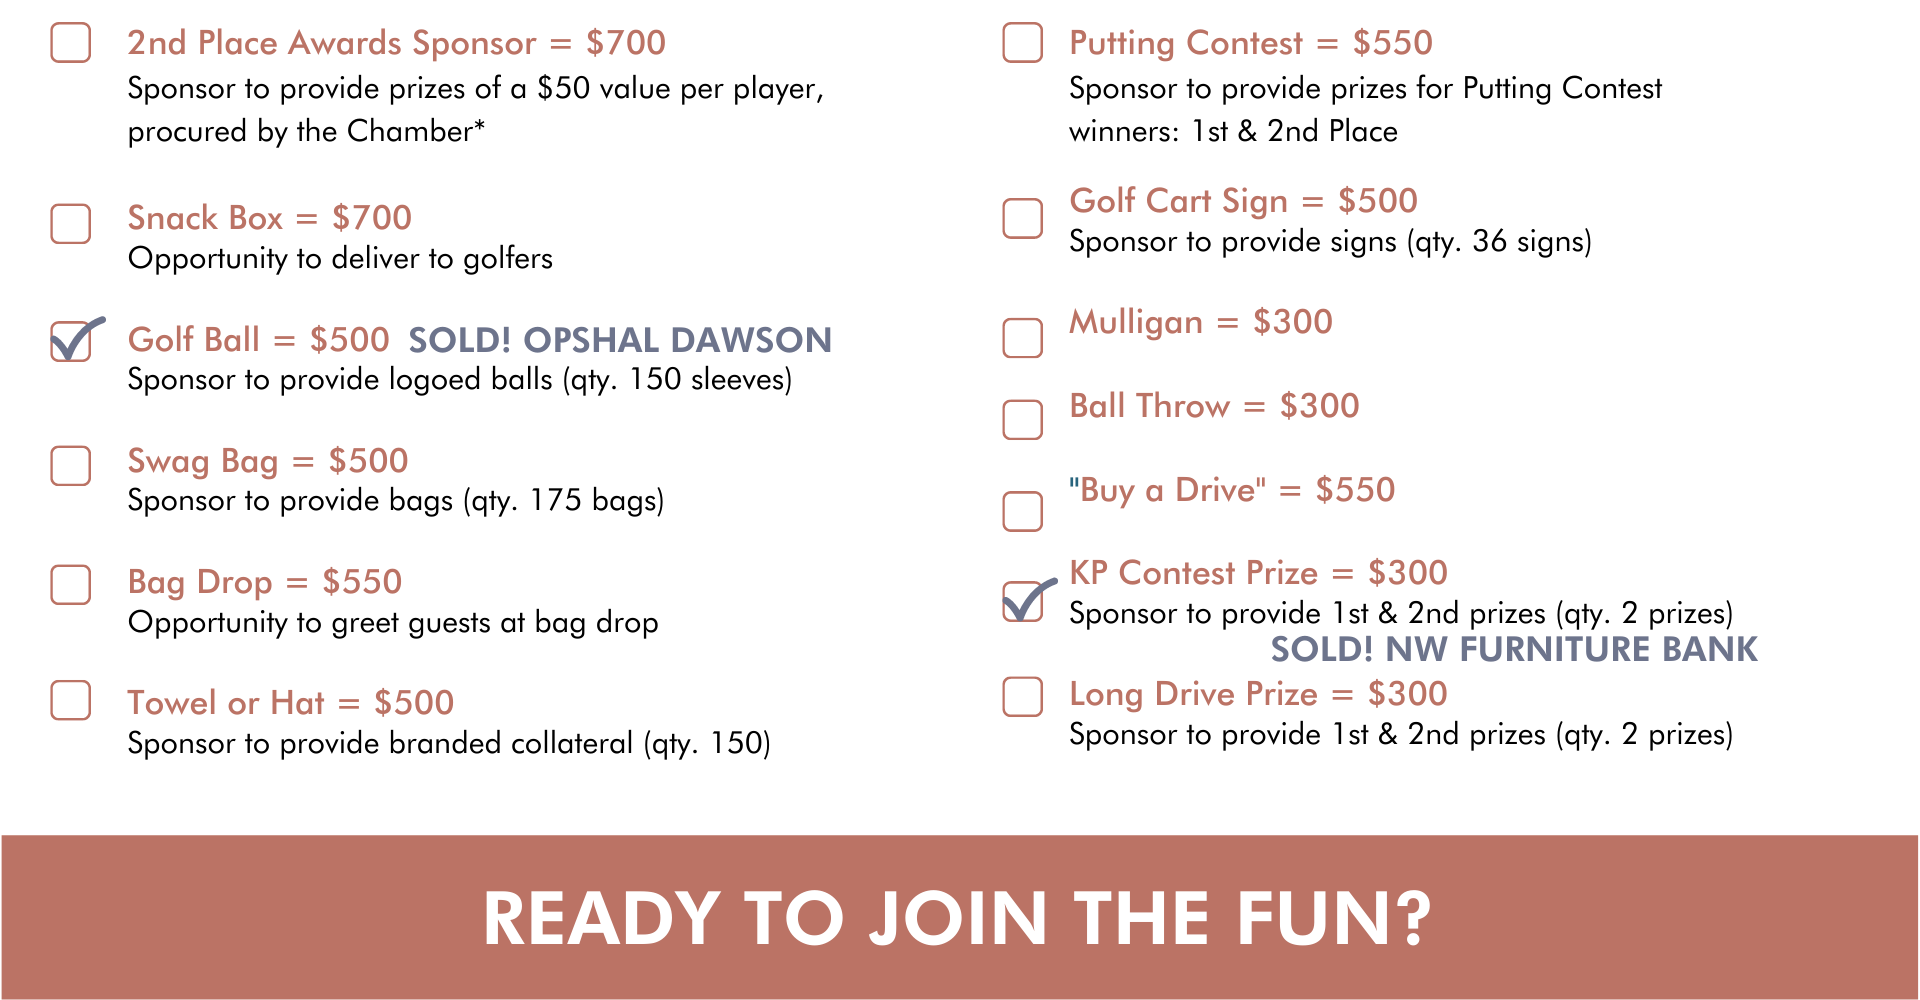 """Snack Box = $700 Opportunity to deliver to golfers  Golf Ball = $500 Sponsor to provide logoed balls (qty. 150 sleeves)  Swag Bag = $500 Sponsor to provide bags (qty. 175 bags)  Bag Drop = $550 Opportunity to greet guests at bag drop  Towel or Hat = $500 Sponsor to provide branded collateral (qty. 150) 2nd Place Awards Sponsor = $700 Sponsor to provide prizes of a $50 value per player, procured by the Chamber* Golf Cart Sign = $500 Sponsor to provide signs (qty. 36 signs)  Mulligan = $300  Ball Throw = $300  """"Buy a Drive"""" = $550  KP Contest Prize = $300 Sponsor to provide 1st & 2nd prizes (qty. 2 prizes)  Long Drive Prize = $300 Sponsor to provide 1st & 2nd prizes (qty. 2 prizes) Putting Contest = $550 Sponsor to provide prizes for Putting Contest winners: 1st & 2nd Place ready to join the fun?"""